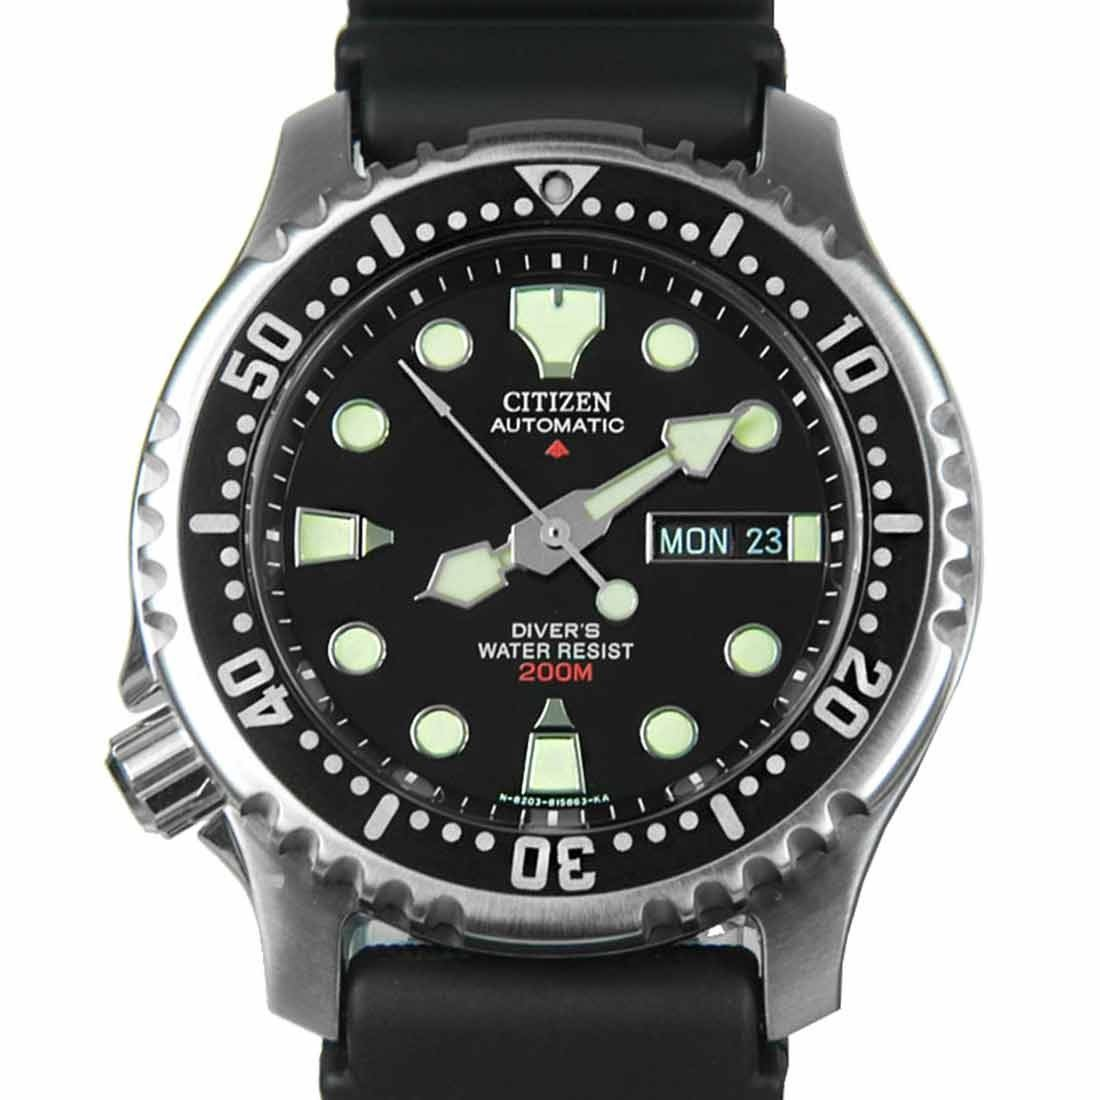 NY2300 NY0040 NY0054 Citizen Automatic Mens Scuba Diver Watch